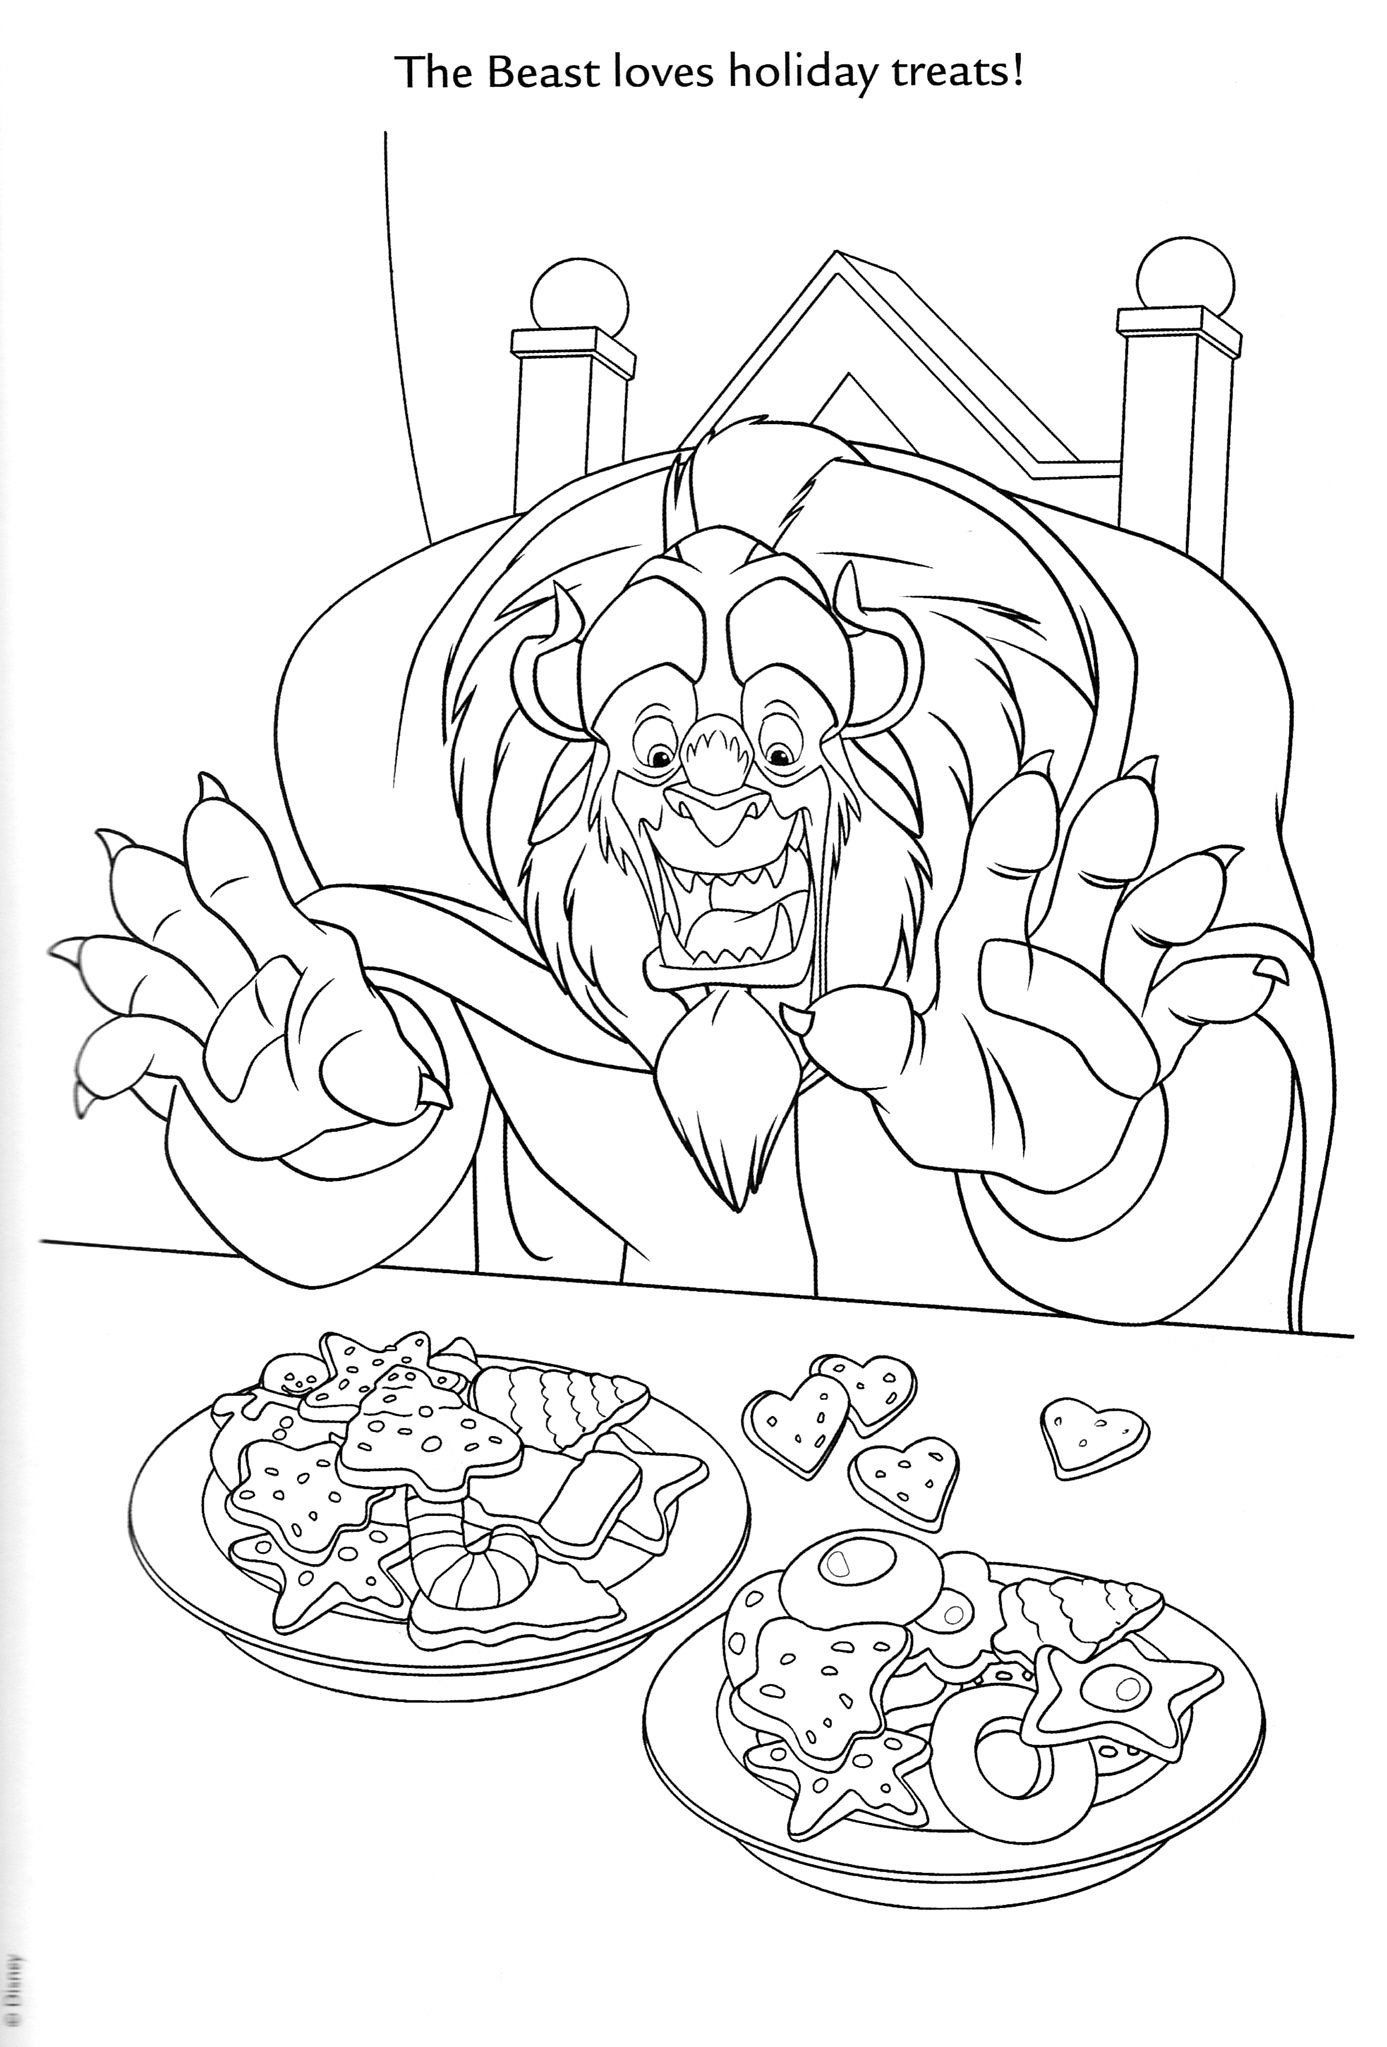 Beauty And The Beast Coloring Book Luxury Pin By K S On Coloring Disney Mermaid Coloring Book Holiday Coloring Book Preschool Coloring Pages